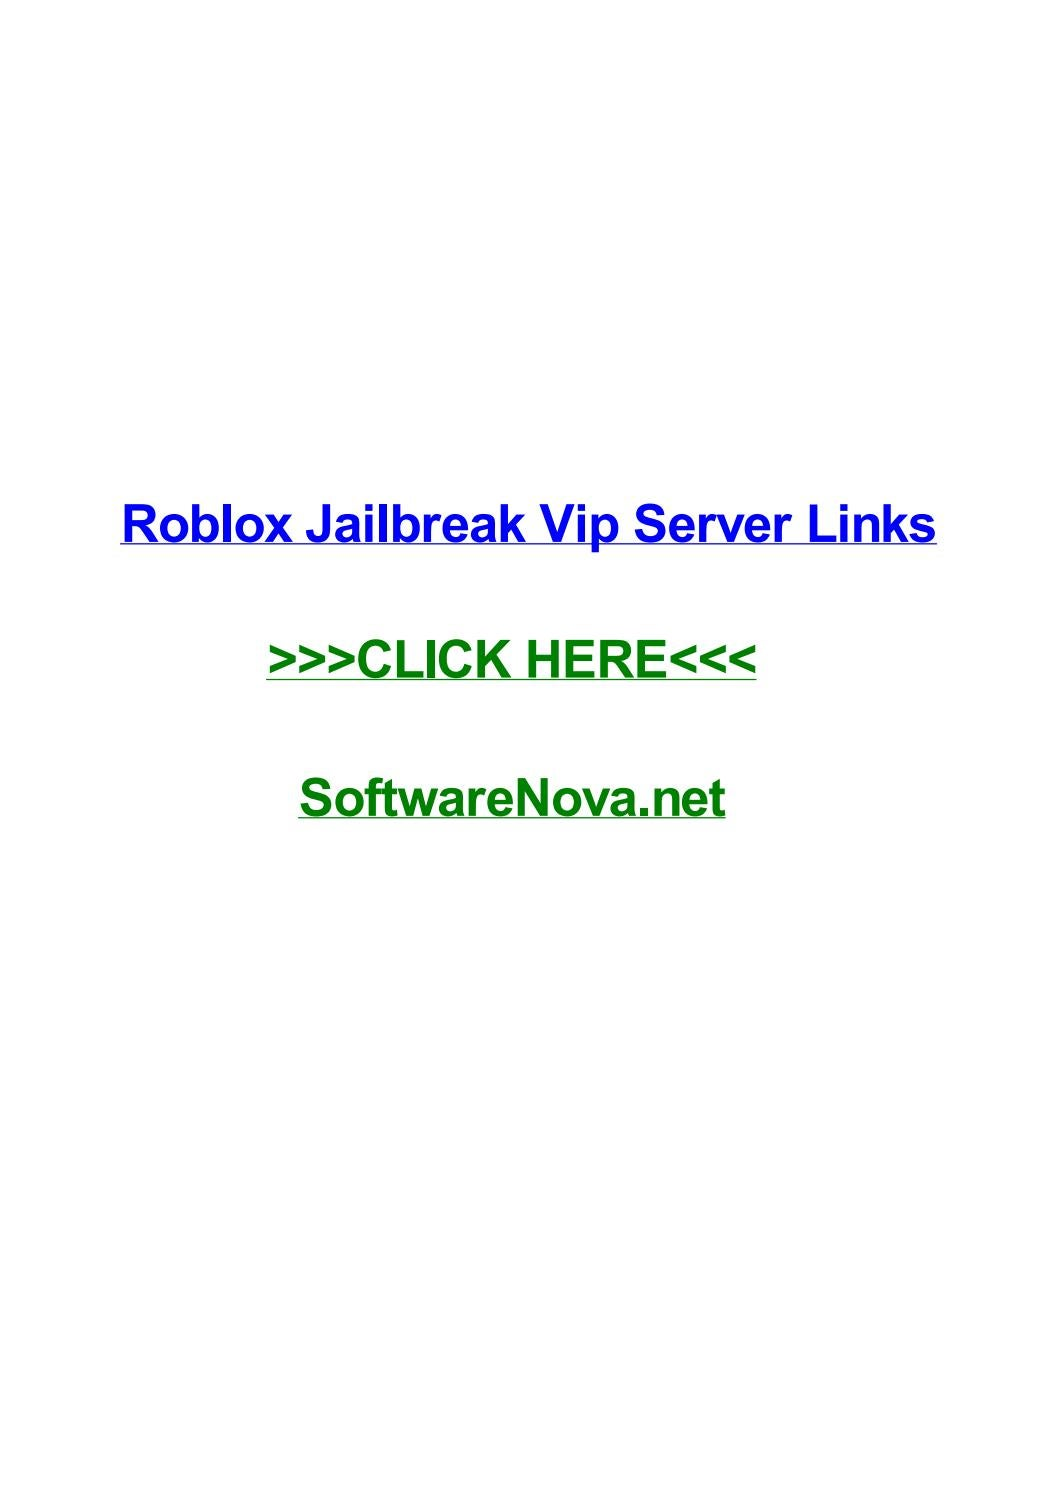 Roblox jailbreak vip server links by elizabethdhodw - issuu